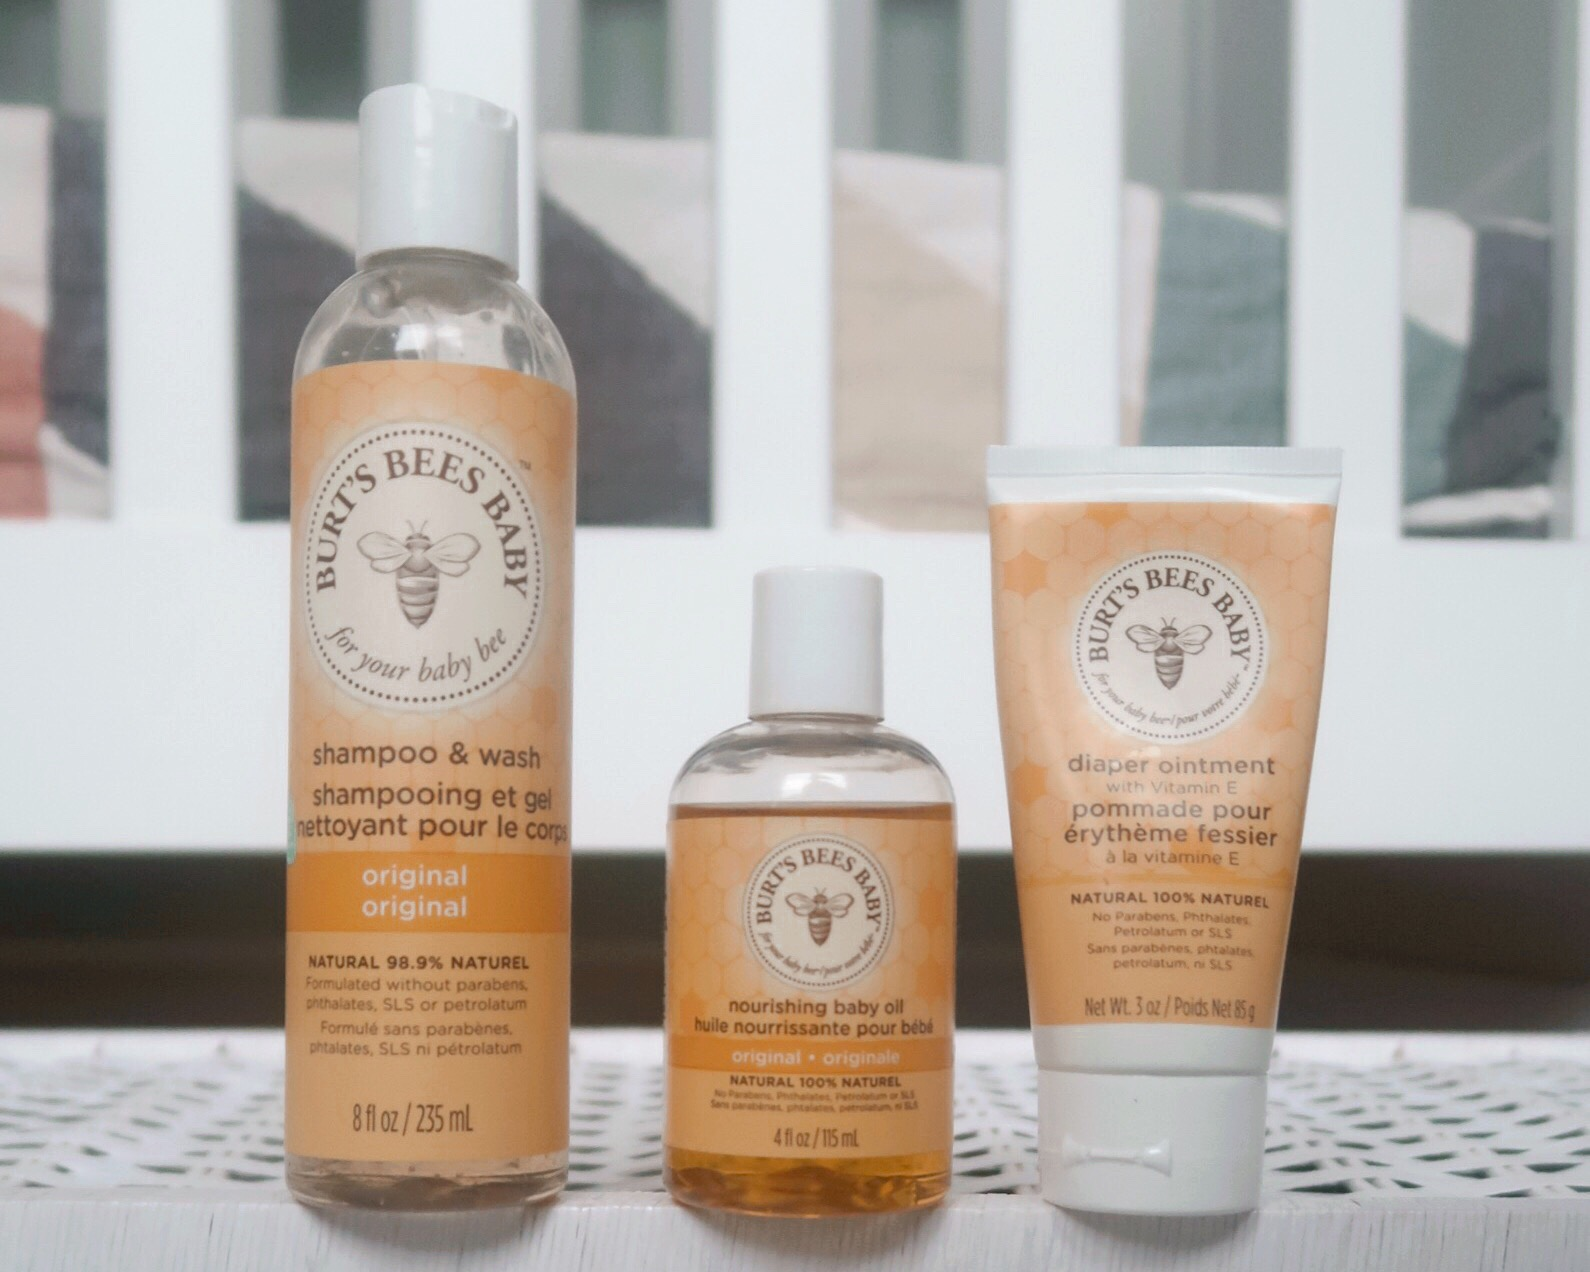 BURTS BEES BABY PRODUCTS